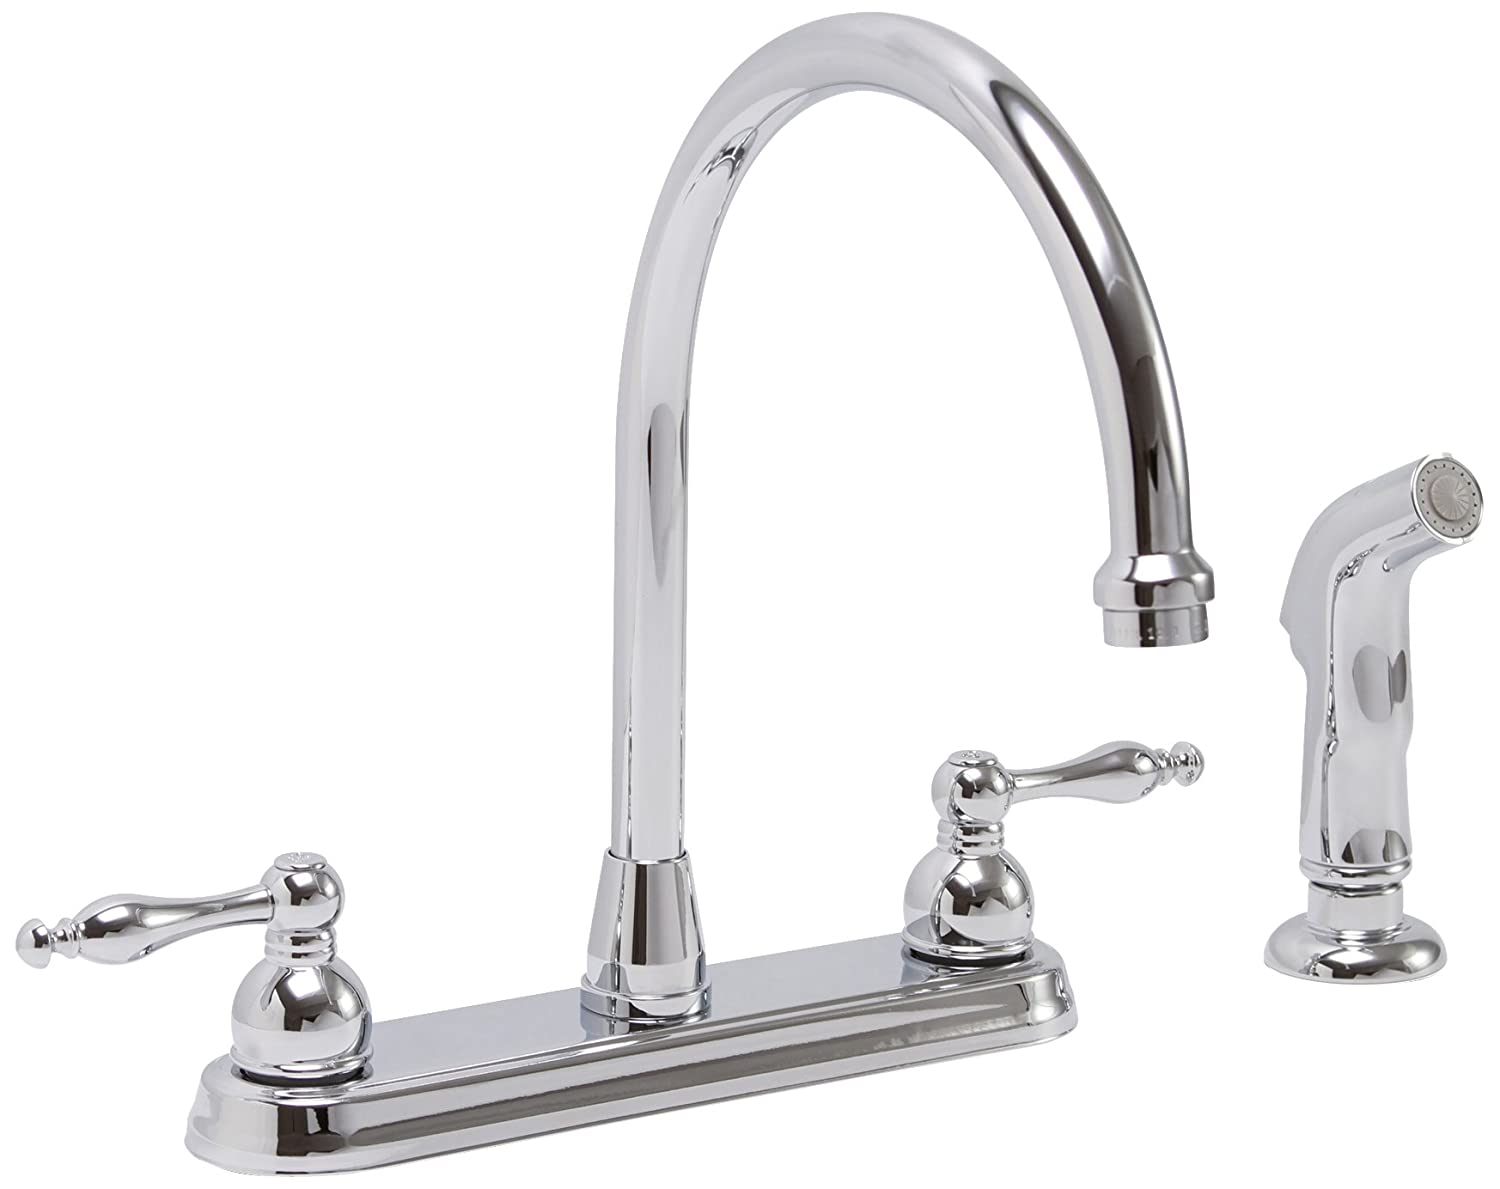 Premier Faucet 119261 Premier Wellington Lead-Free Two-Handle Kitchen Faucet with Matching Side Spray, Chrome